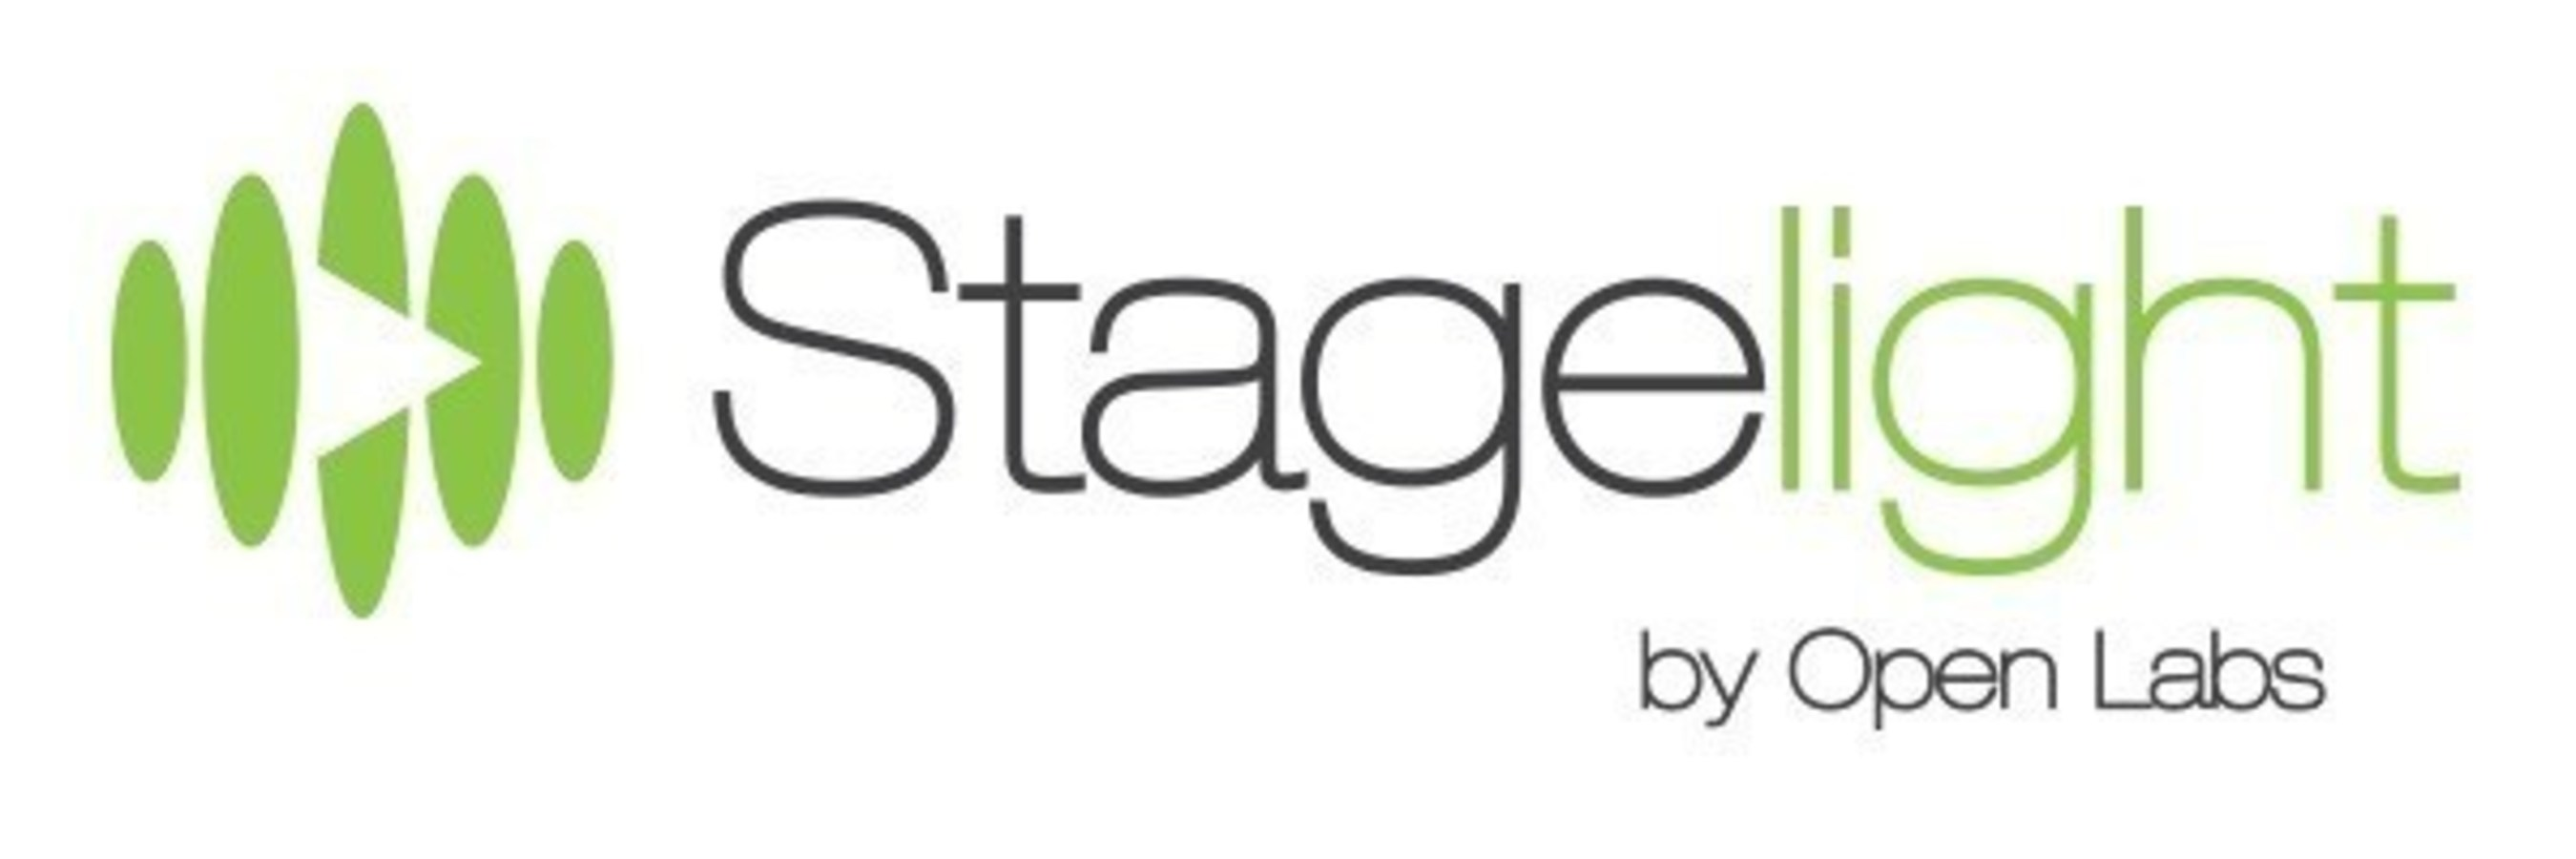 Headquartered in Austin, TX - Open Labs, creators of Stagelight - The Easy Way to Create Music, creates software products designed to inspire, educate and elevate aspiring and professional musicians across the world.Create. Inspire. Empower.